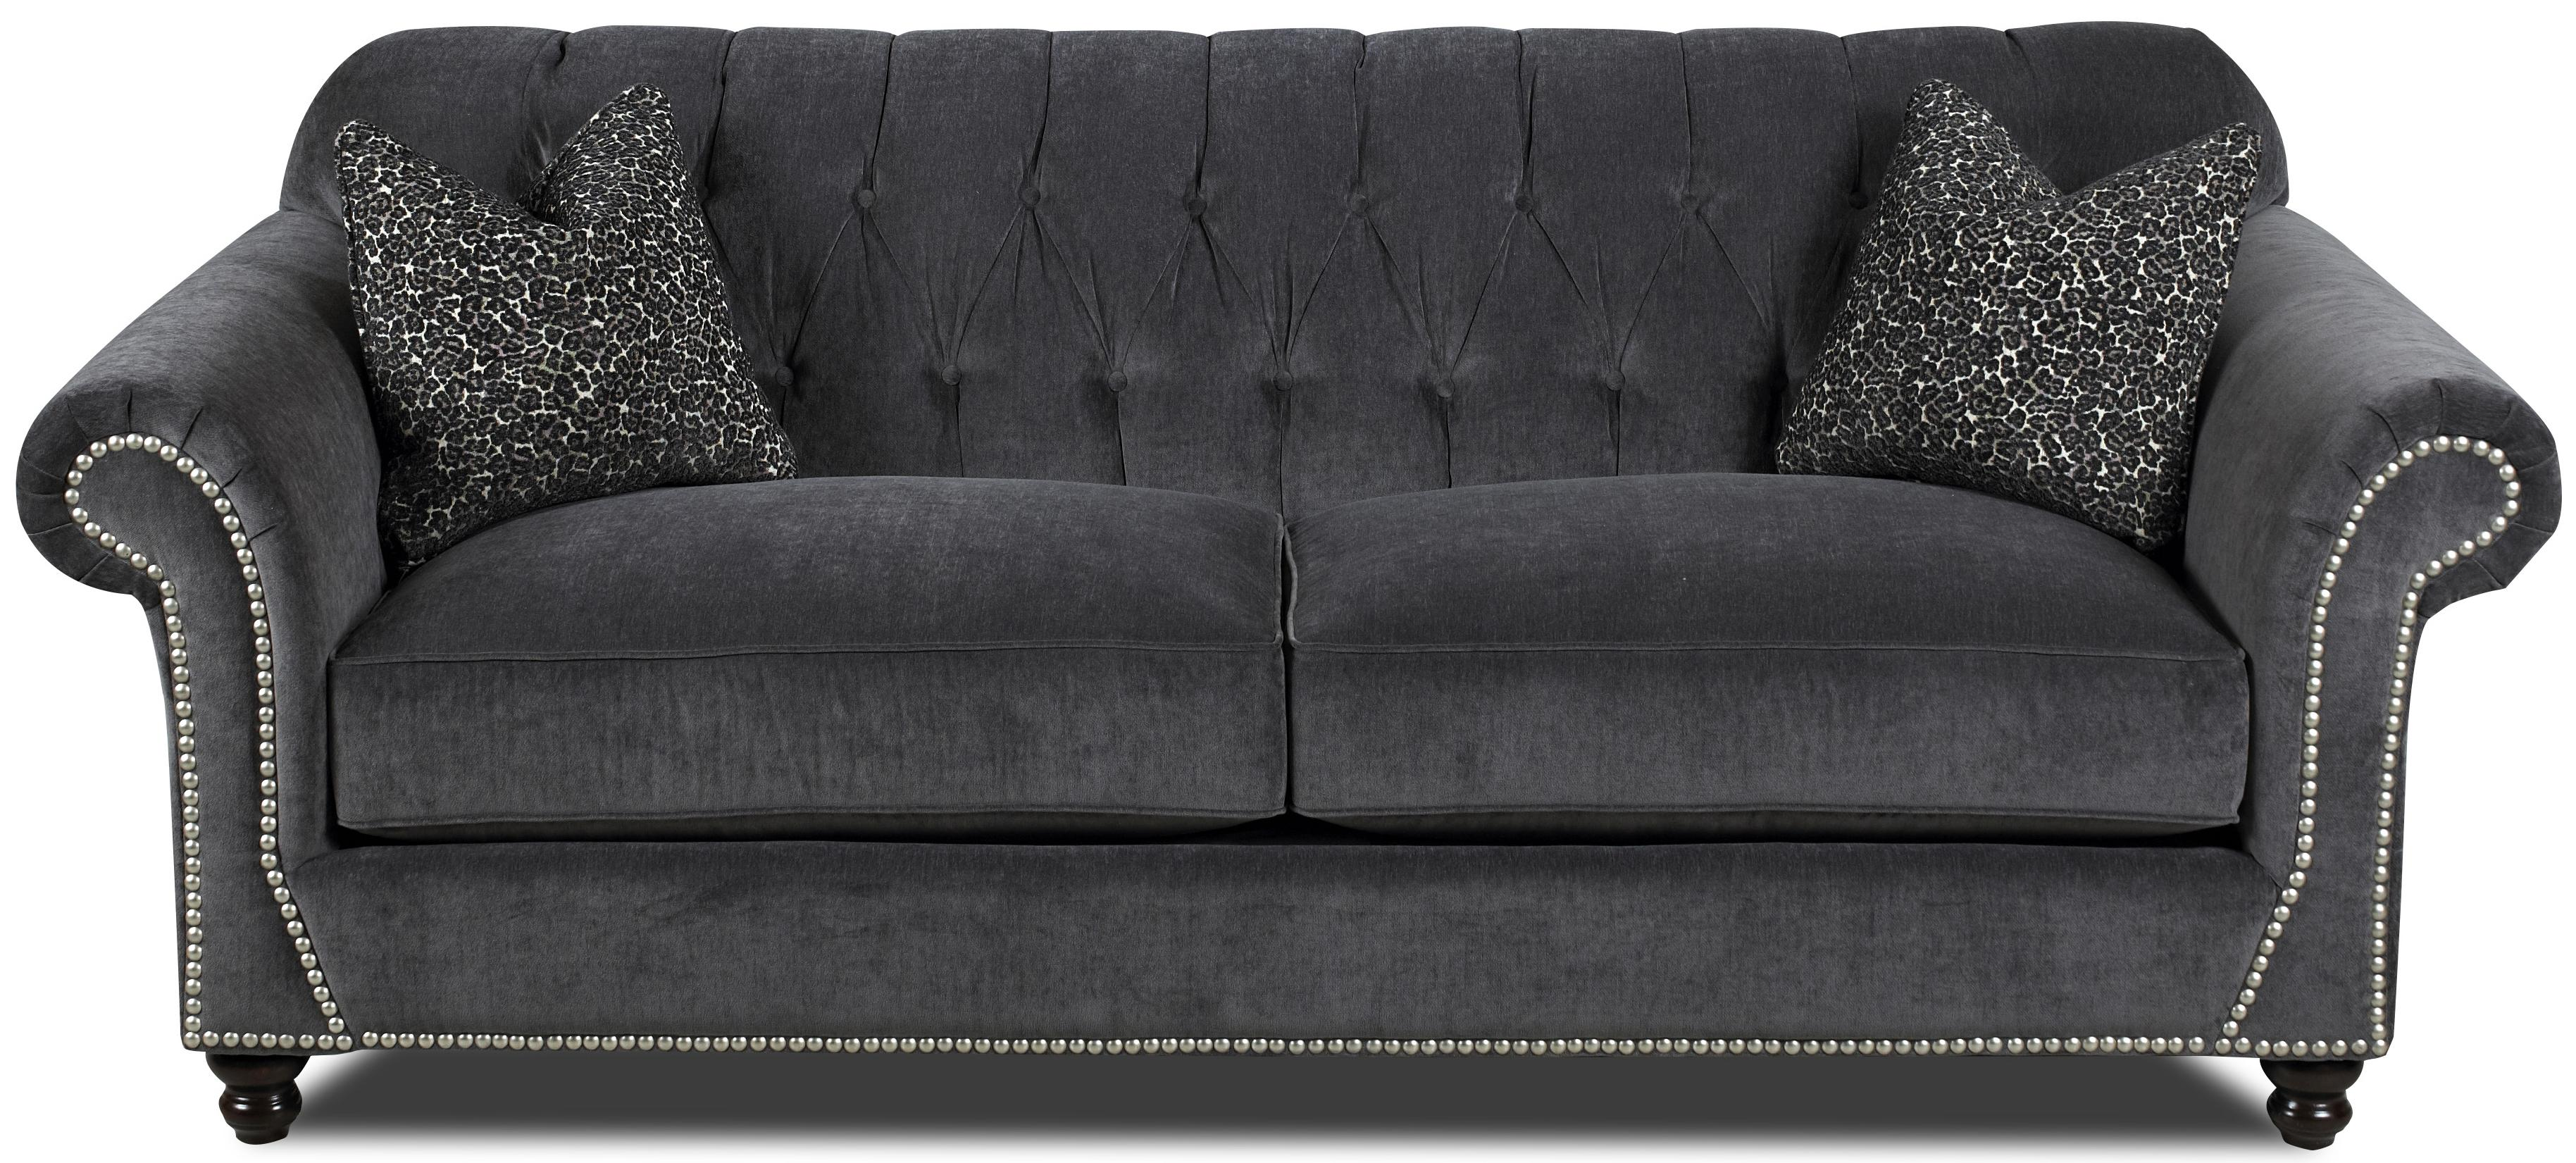 Klaussner Flynn Traditional Sofa with Button Tufted Back, Rolled Arms and Throw Pillows - Steger ...